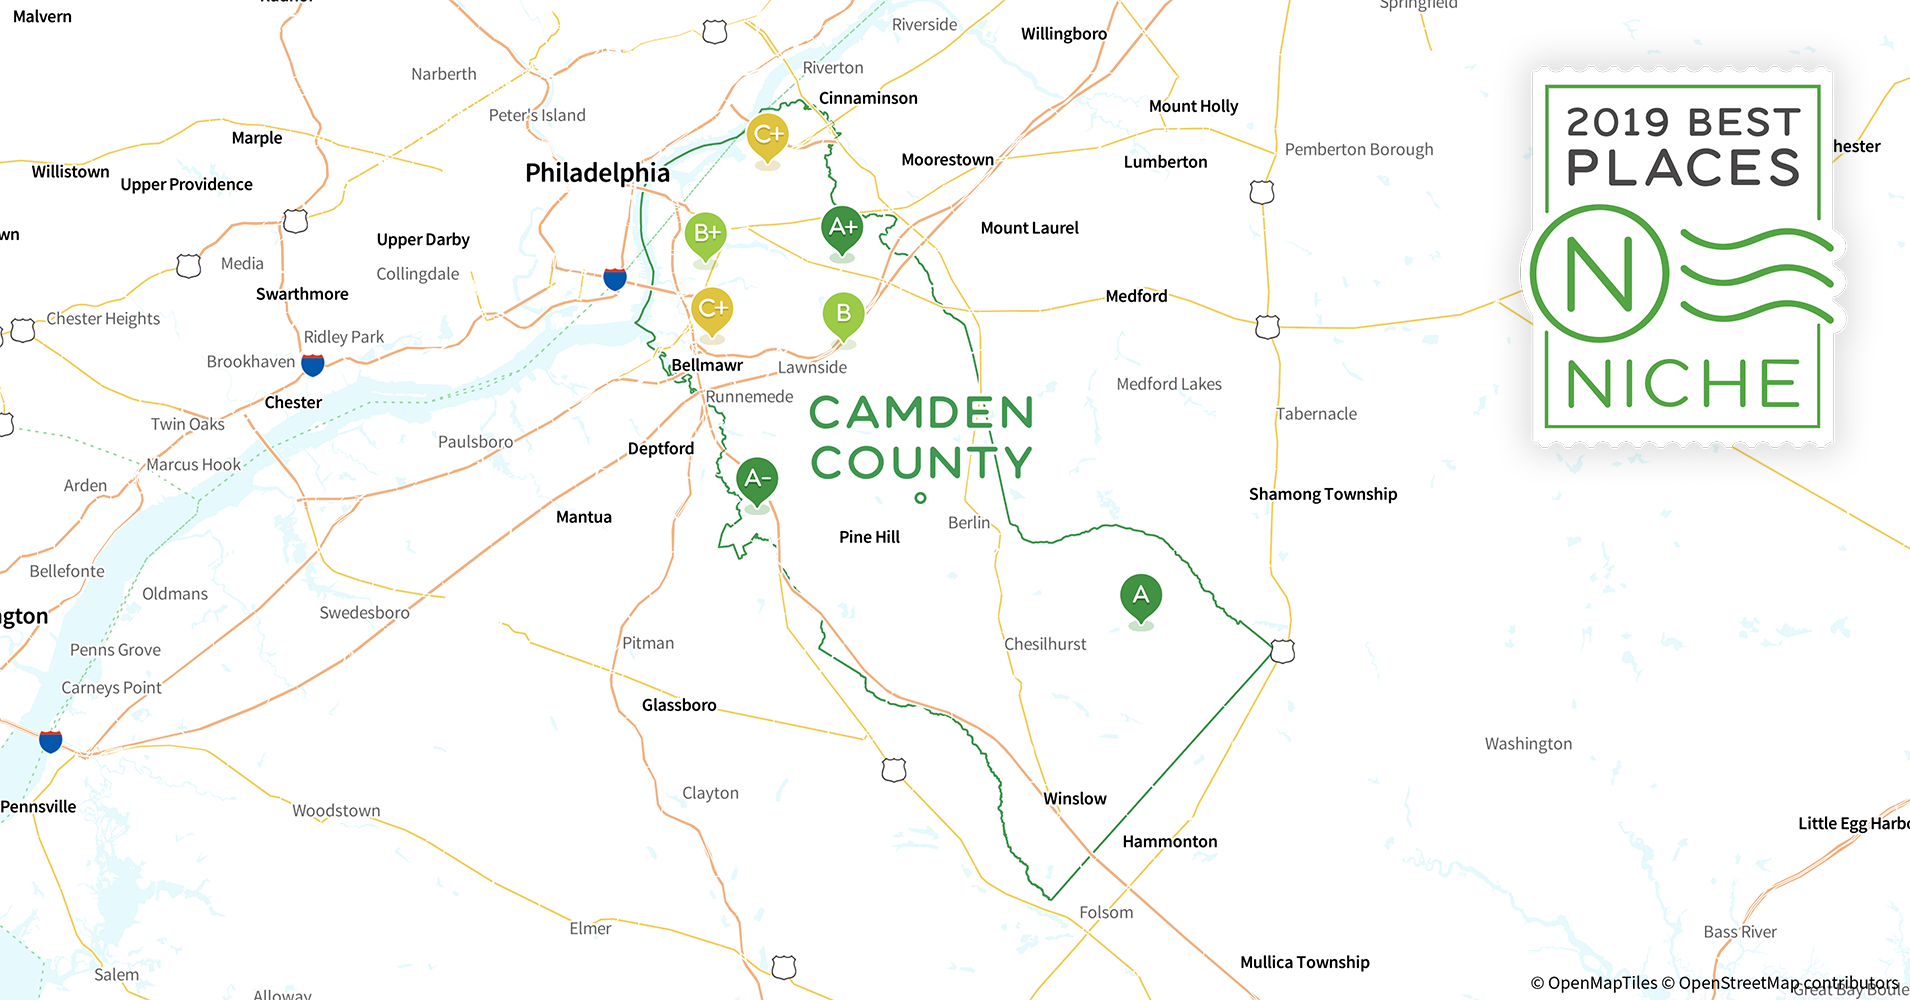 2019 Safe Places to Live in Camden County, NJ - Niche Camden County College Map on